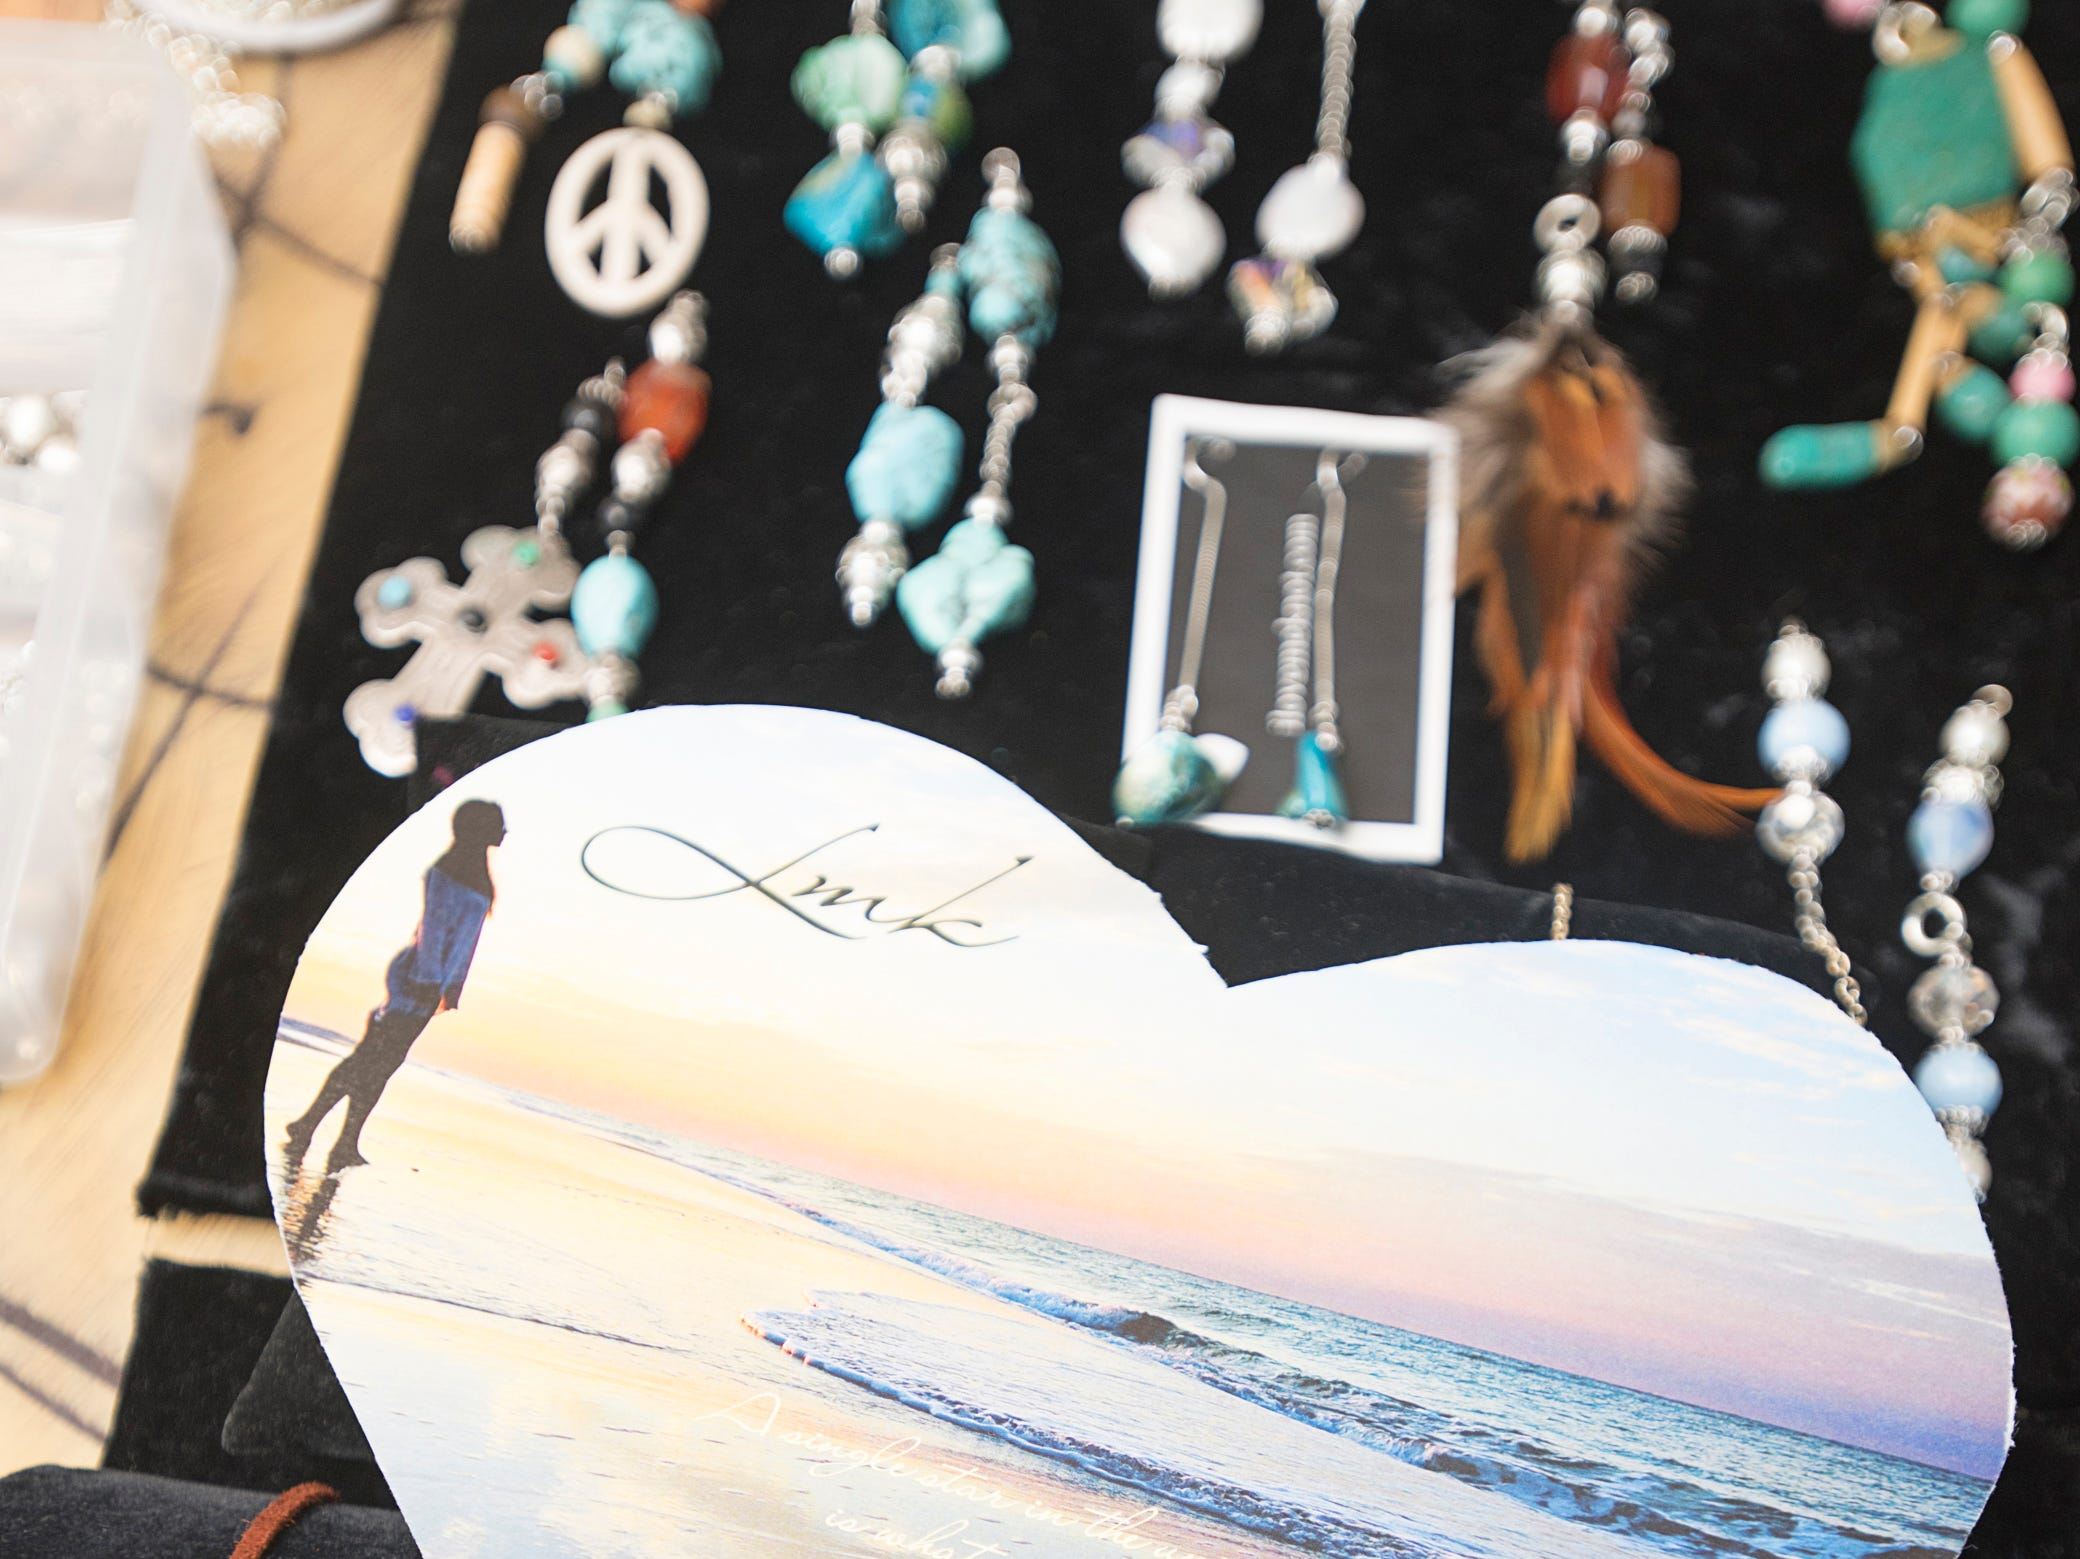 A sample of I Love Me Knot jewelry in Gulf Breeze on Wednesday, December 5, 2018.  A portion of their proceeds aids those who have been impacted by suicide while reducing the stigma around mental illness.